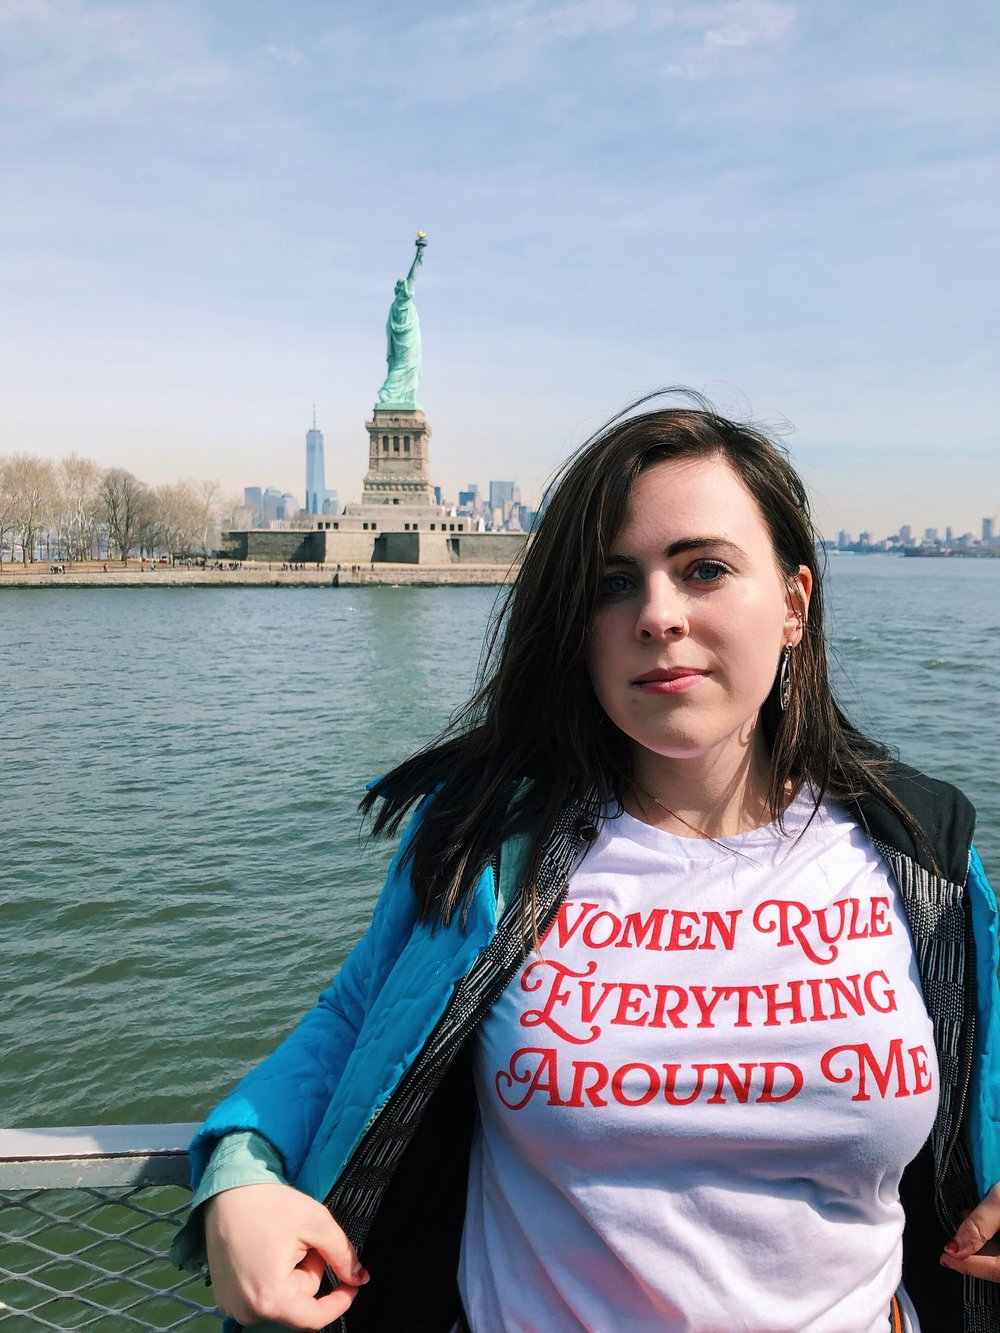 Kolleen Gladden '21 strikes a pose with fellow feminist Lady Liberty. Photo Credit César Andrés Sobrino Acuña